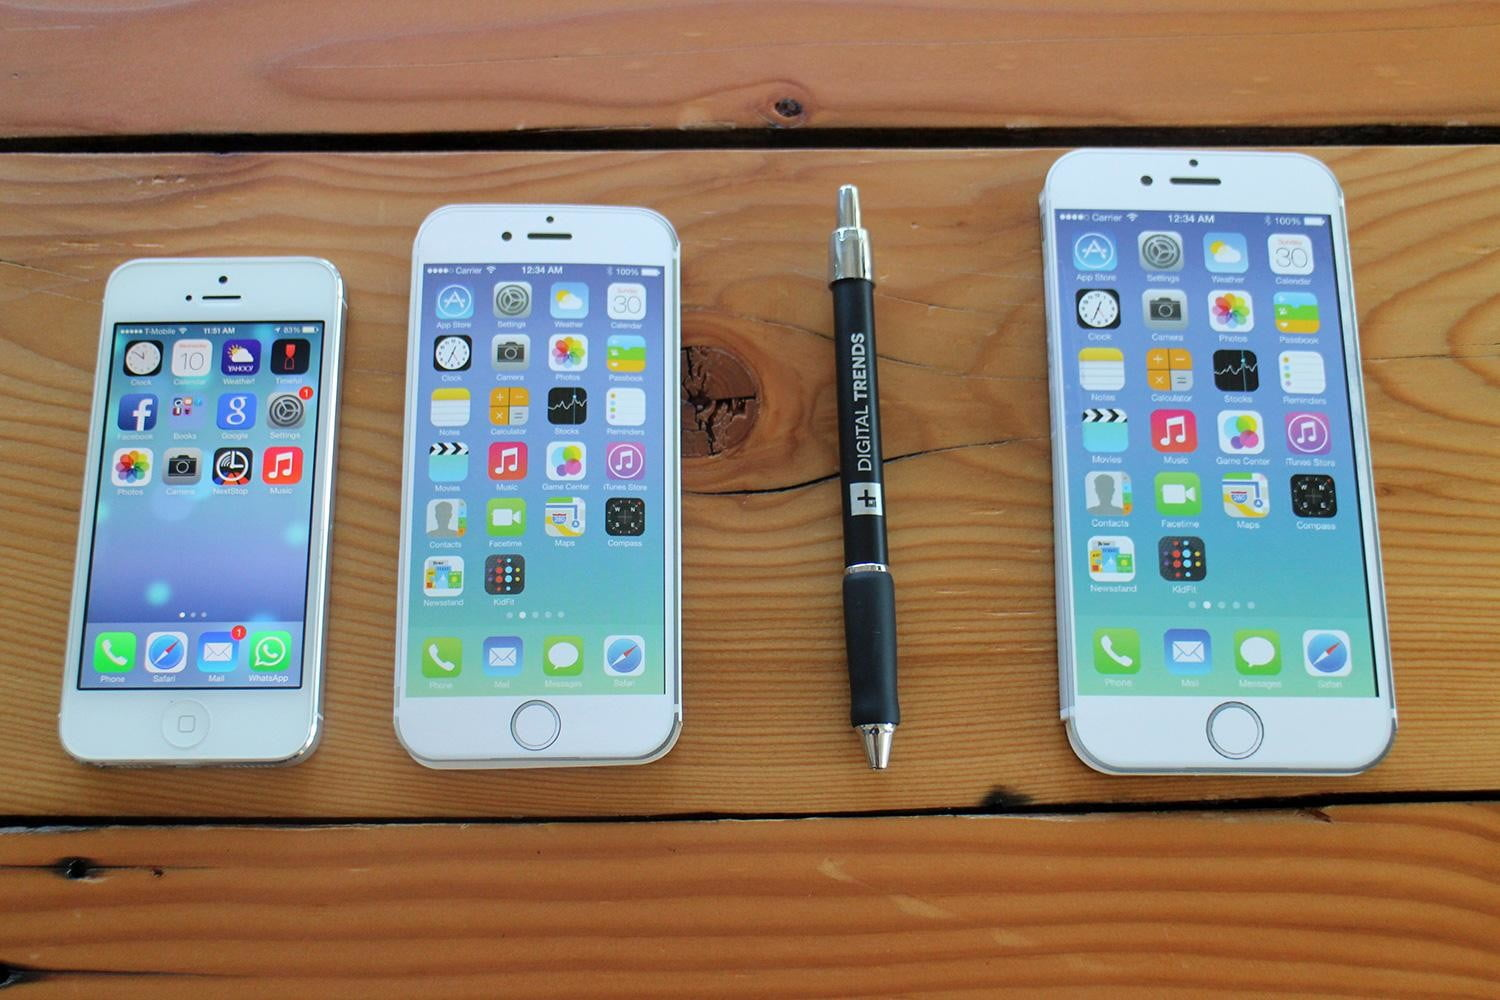 iPhone 5, iPhone 6, pen, and iPhone 6 Plus